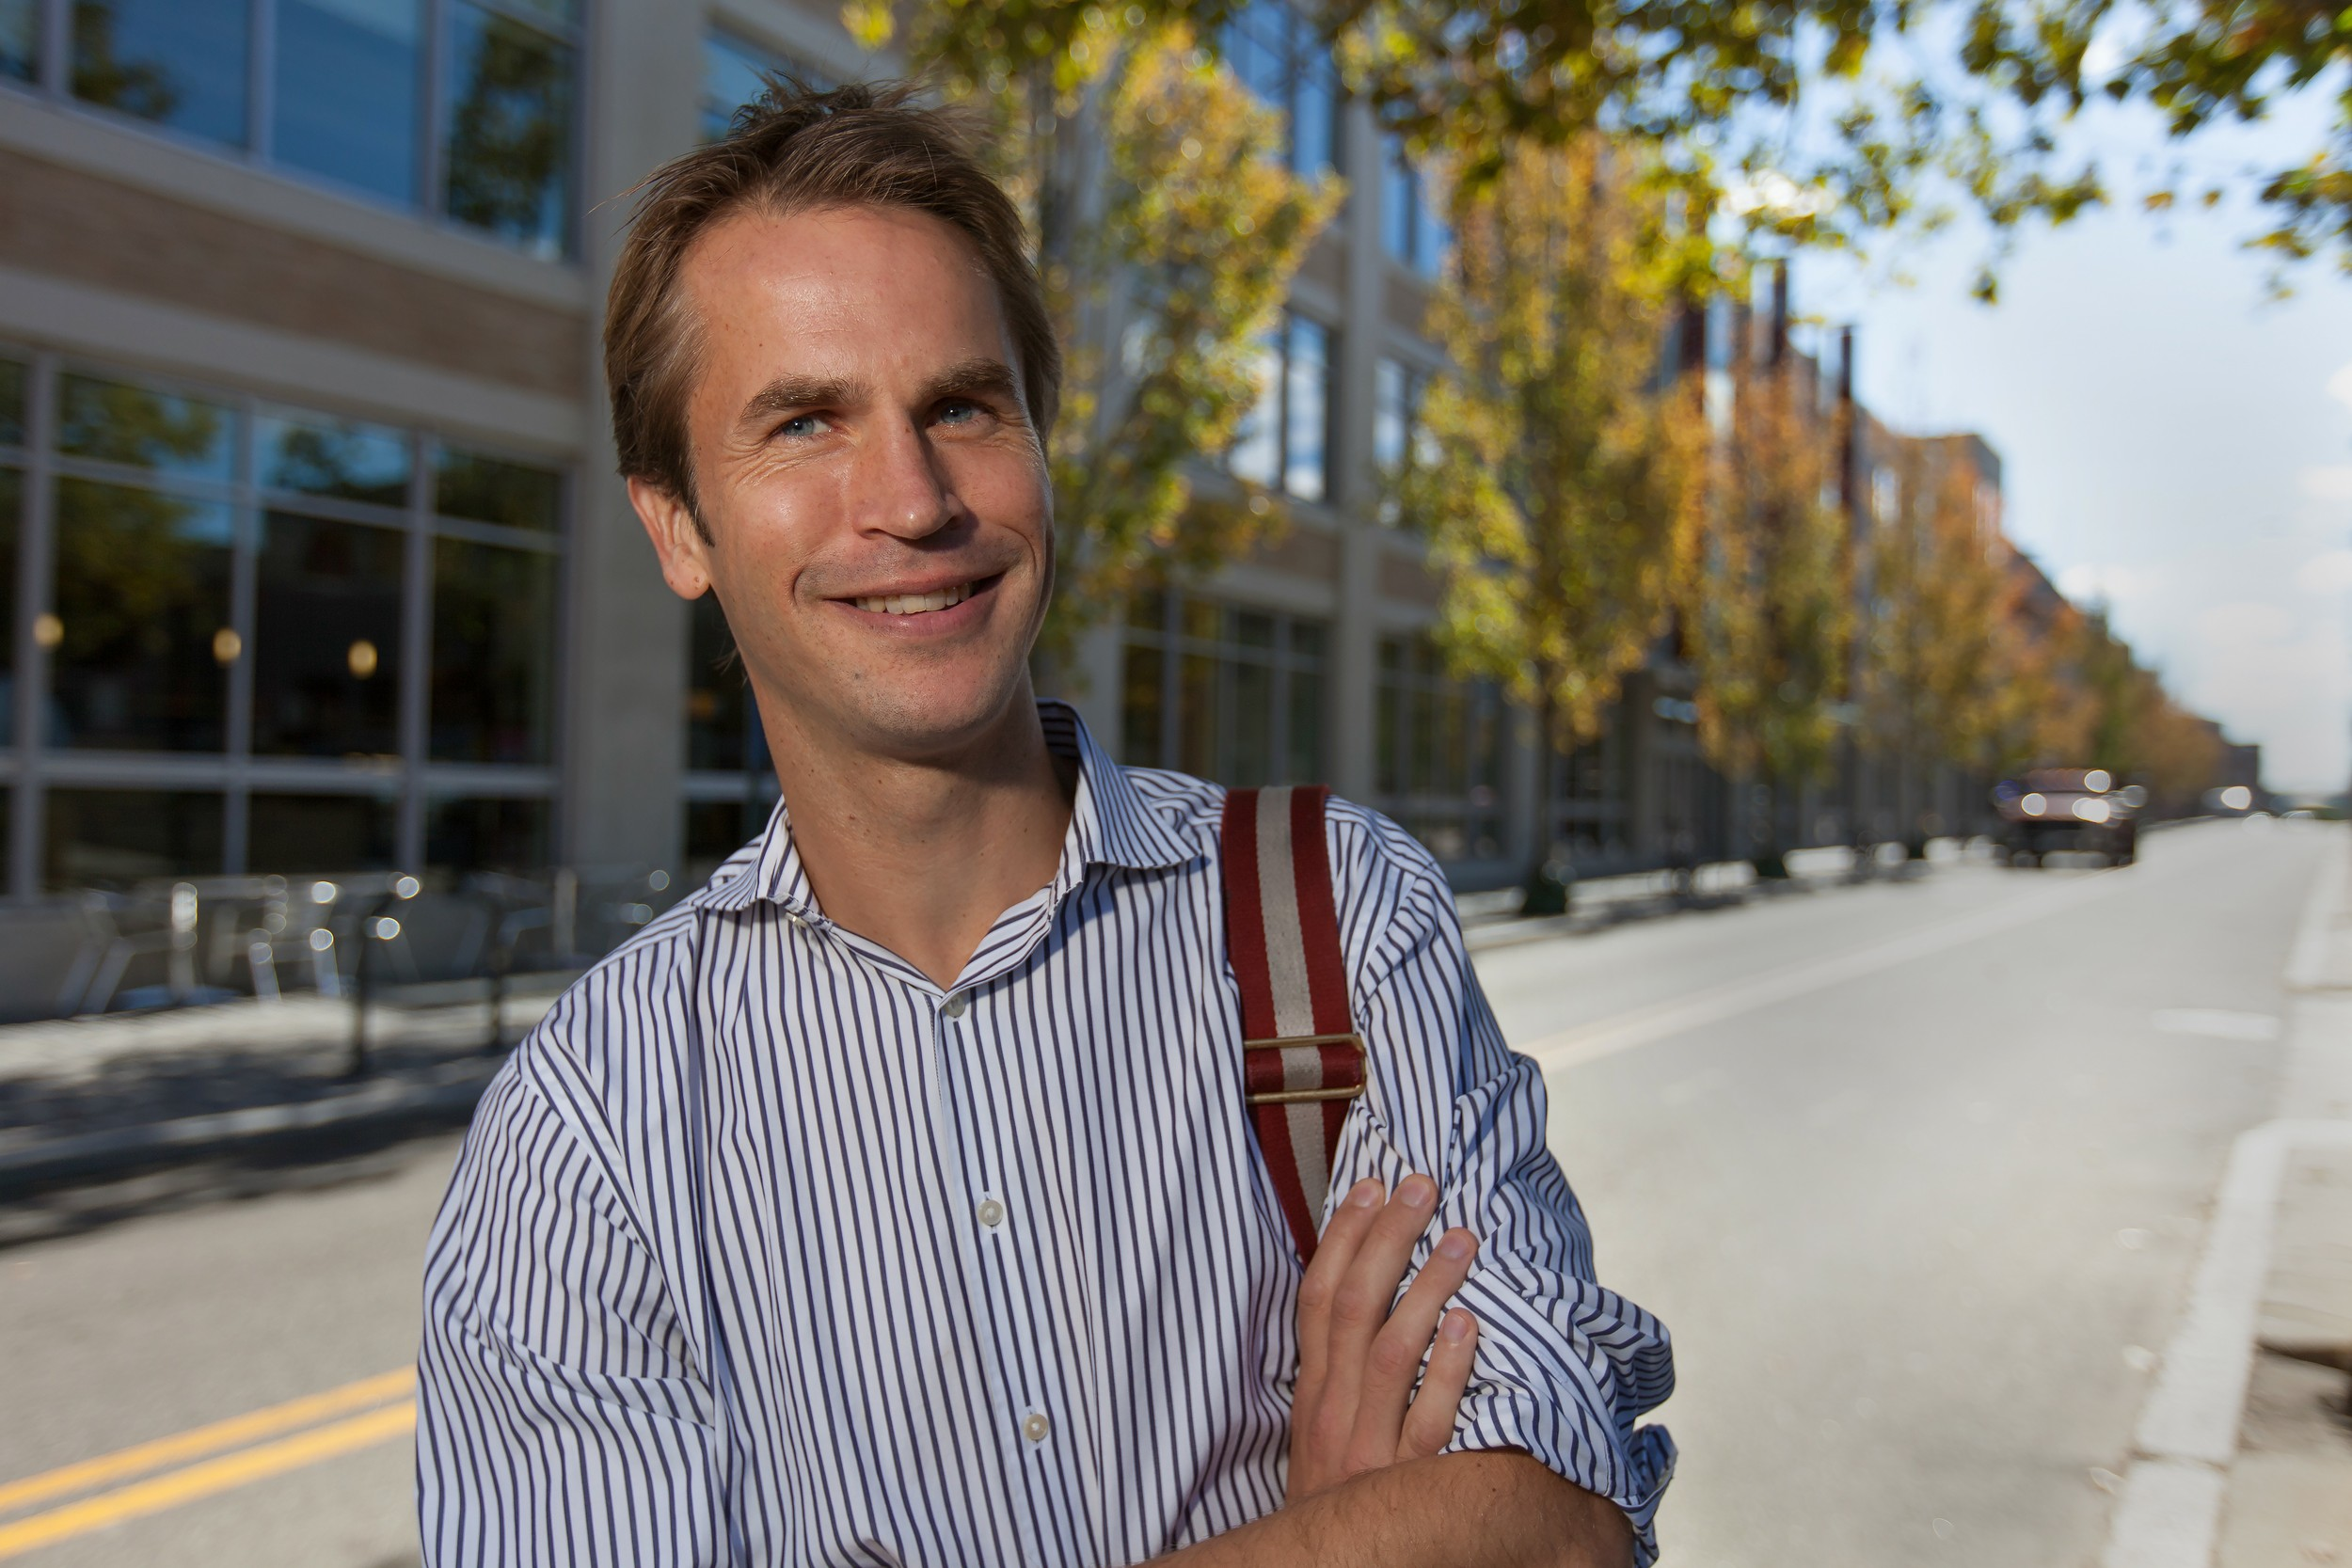 Erik Wernevi, founder of Nordic Technology Group, in front of the Warren Alpert Medical School. Wernevi seeks to create the world's safest personal emergency response system